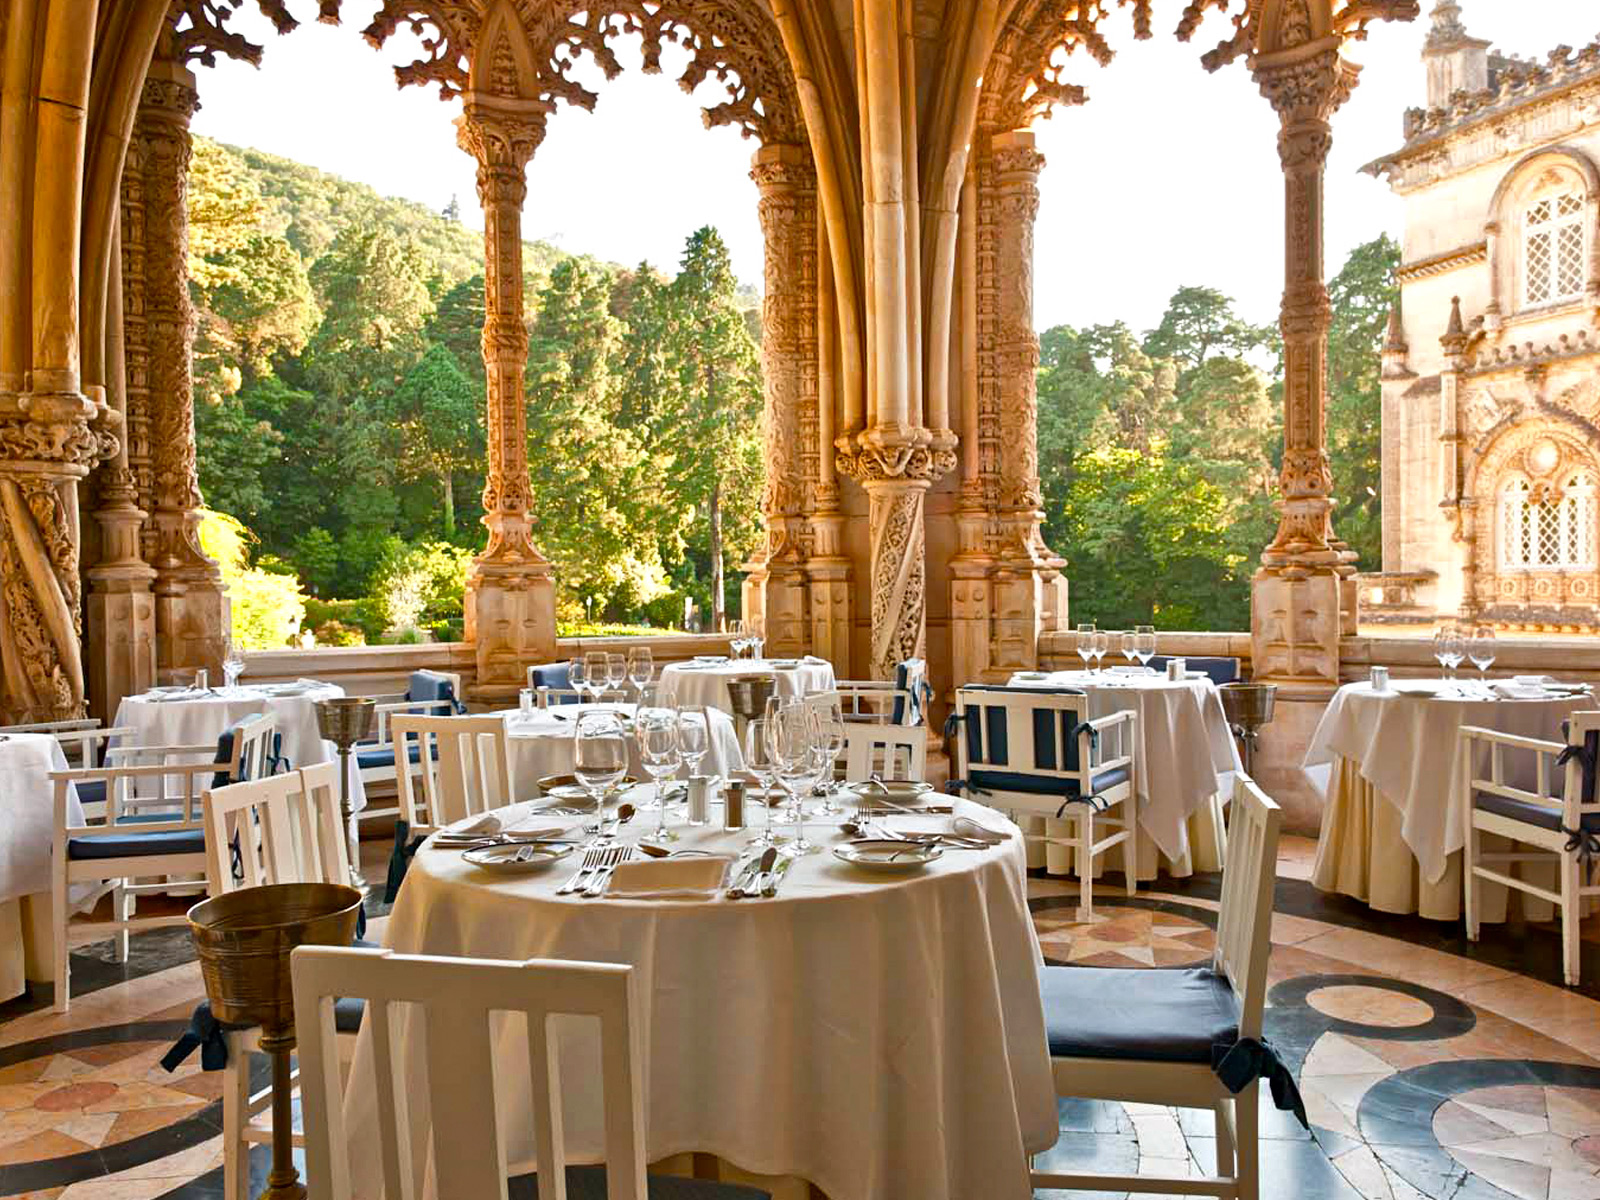 Restaurante - Palace Hotel do Bussaco *****